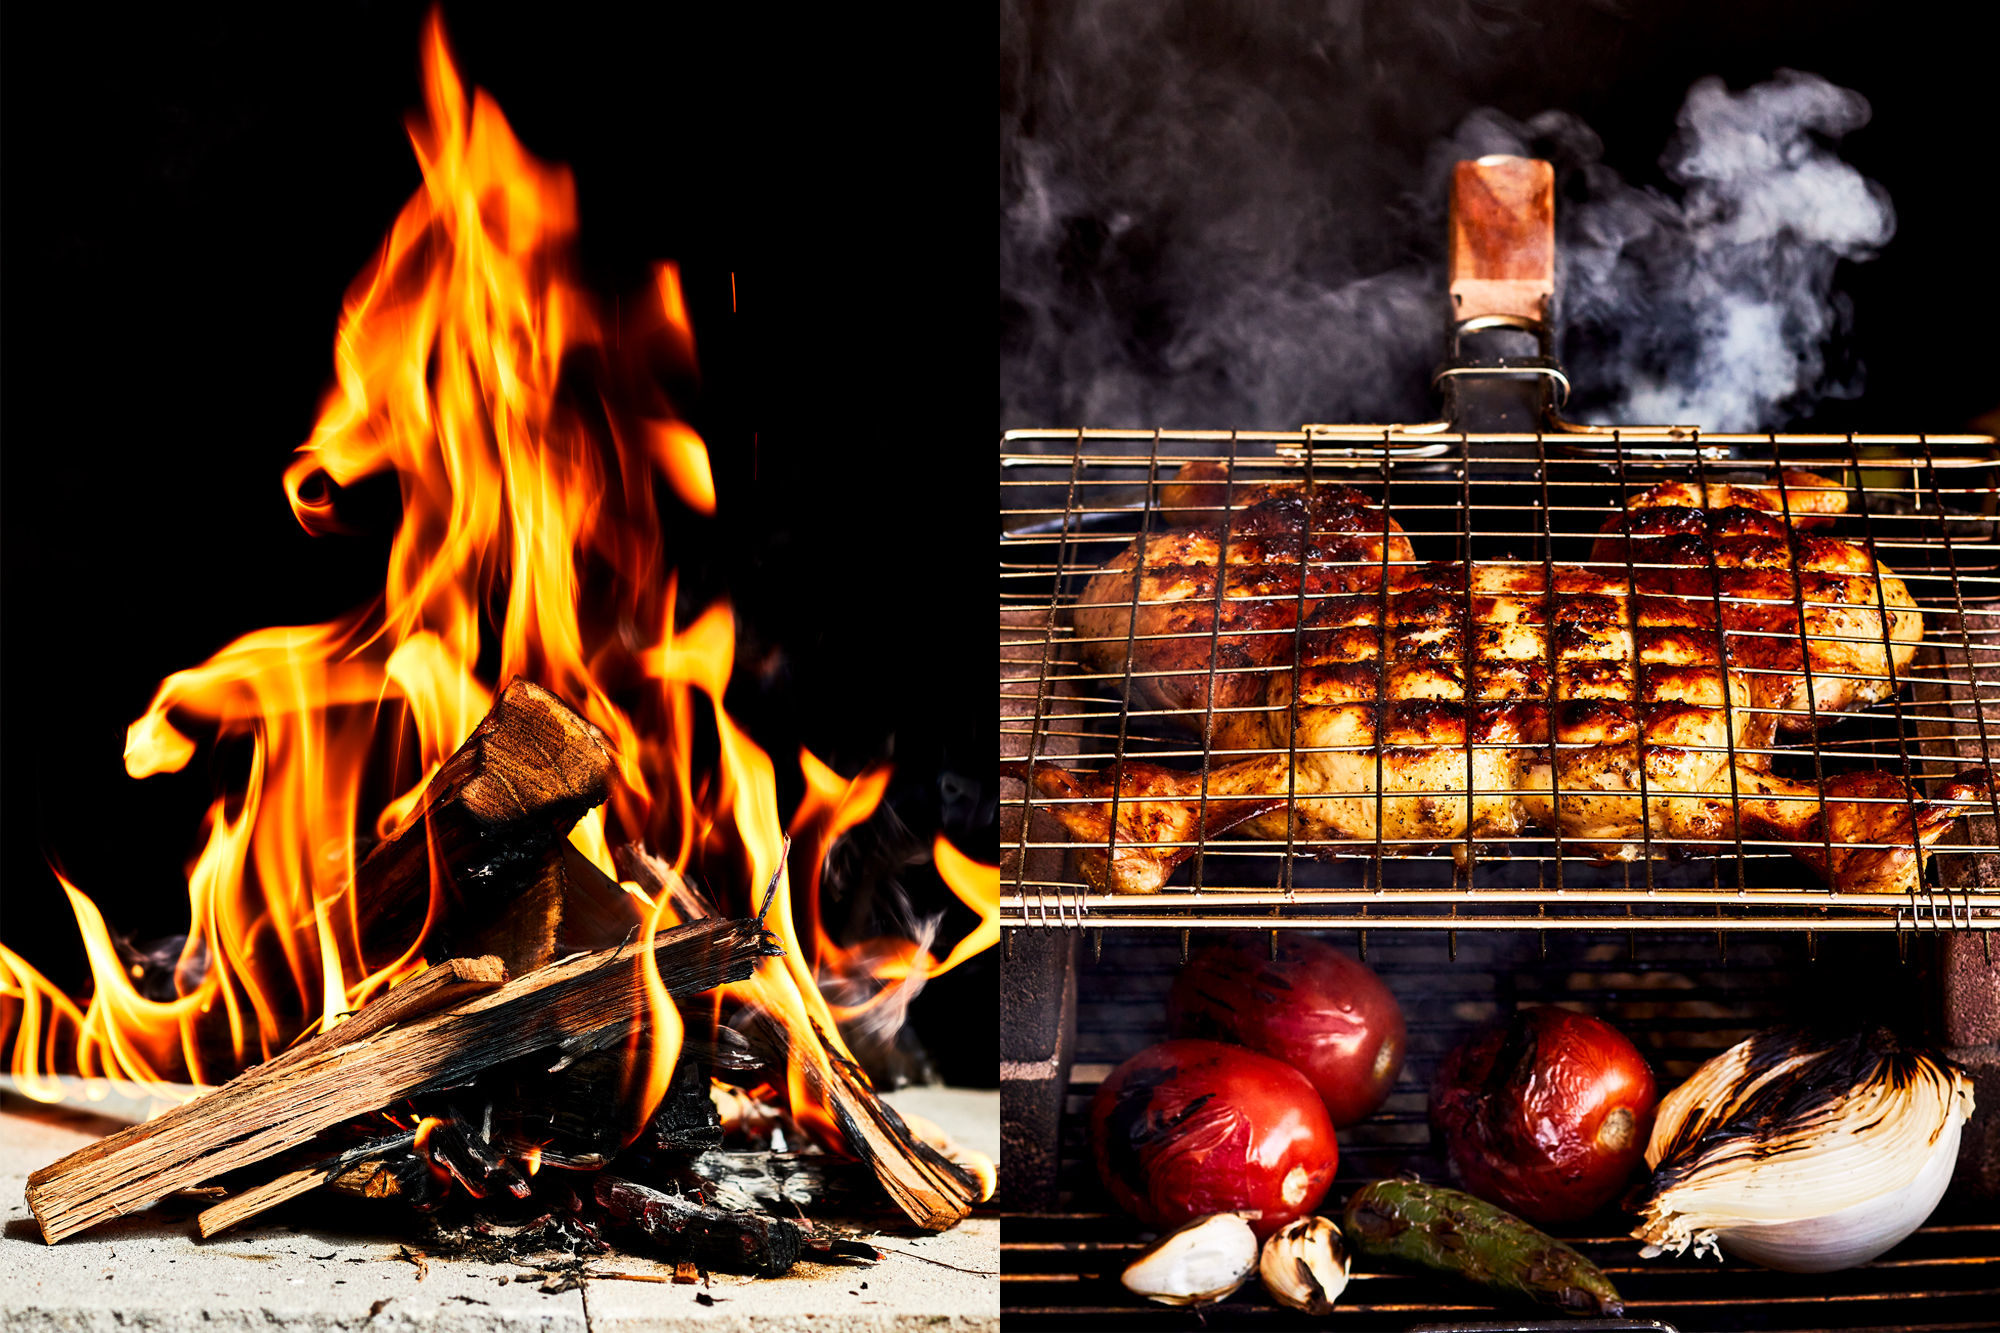 Burning wood and chicken grilling